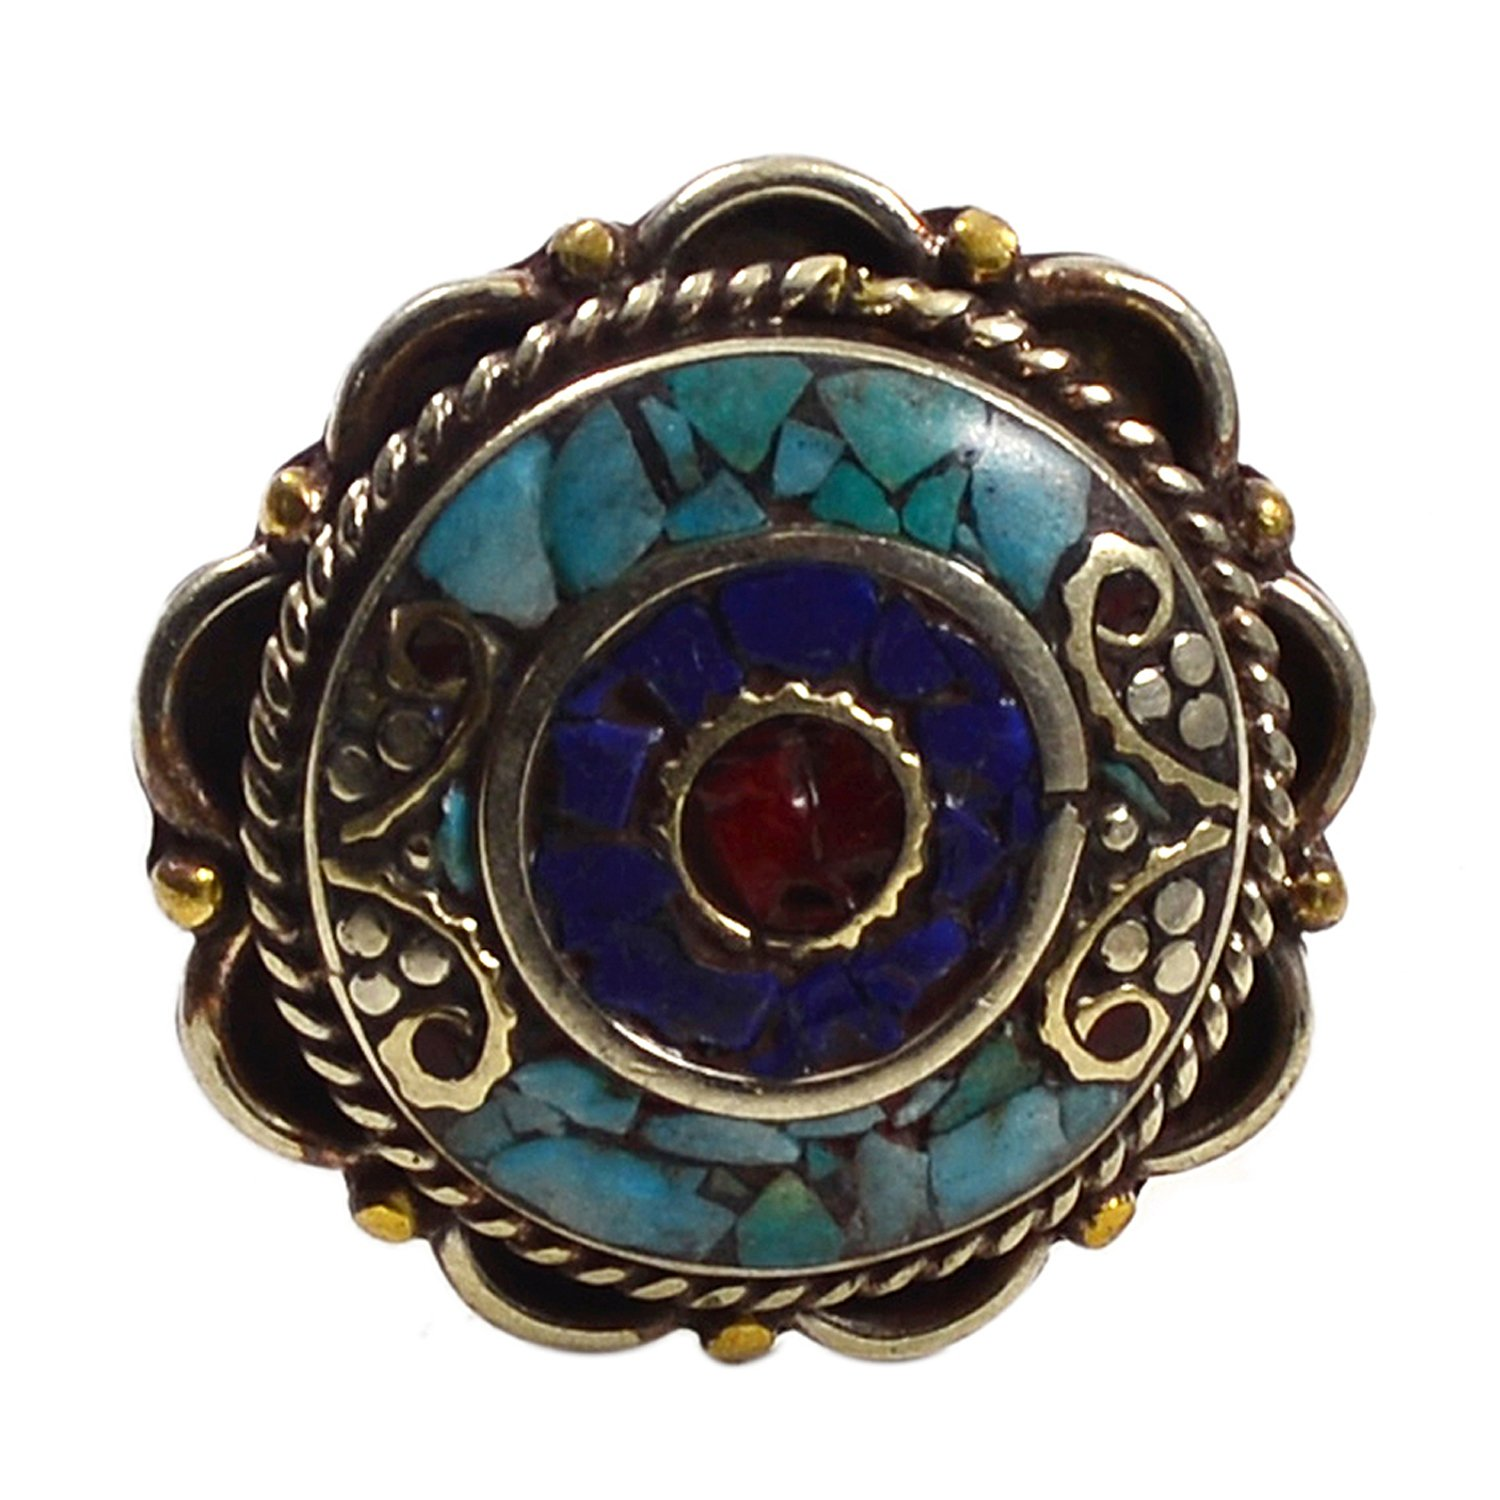 Lapis Lazuli /& Coral Gemstone 925 Silver Plated Ring Sz 9 PG-118134 Saamarth Impex Turquoise